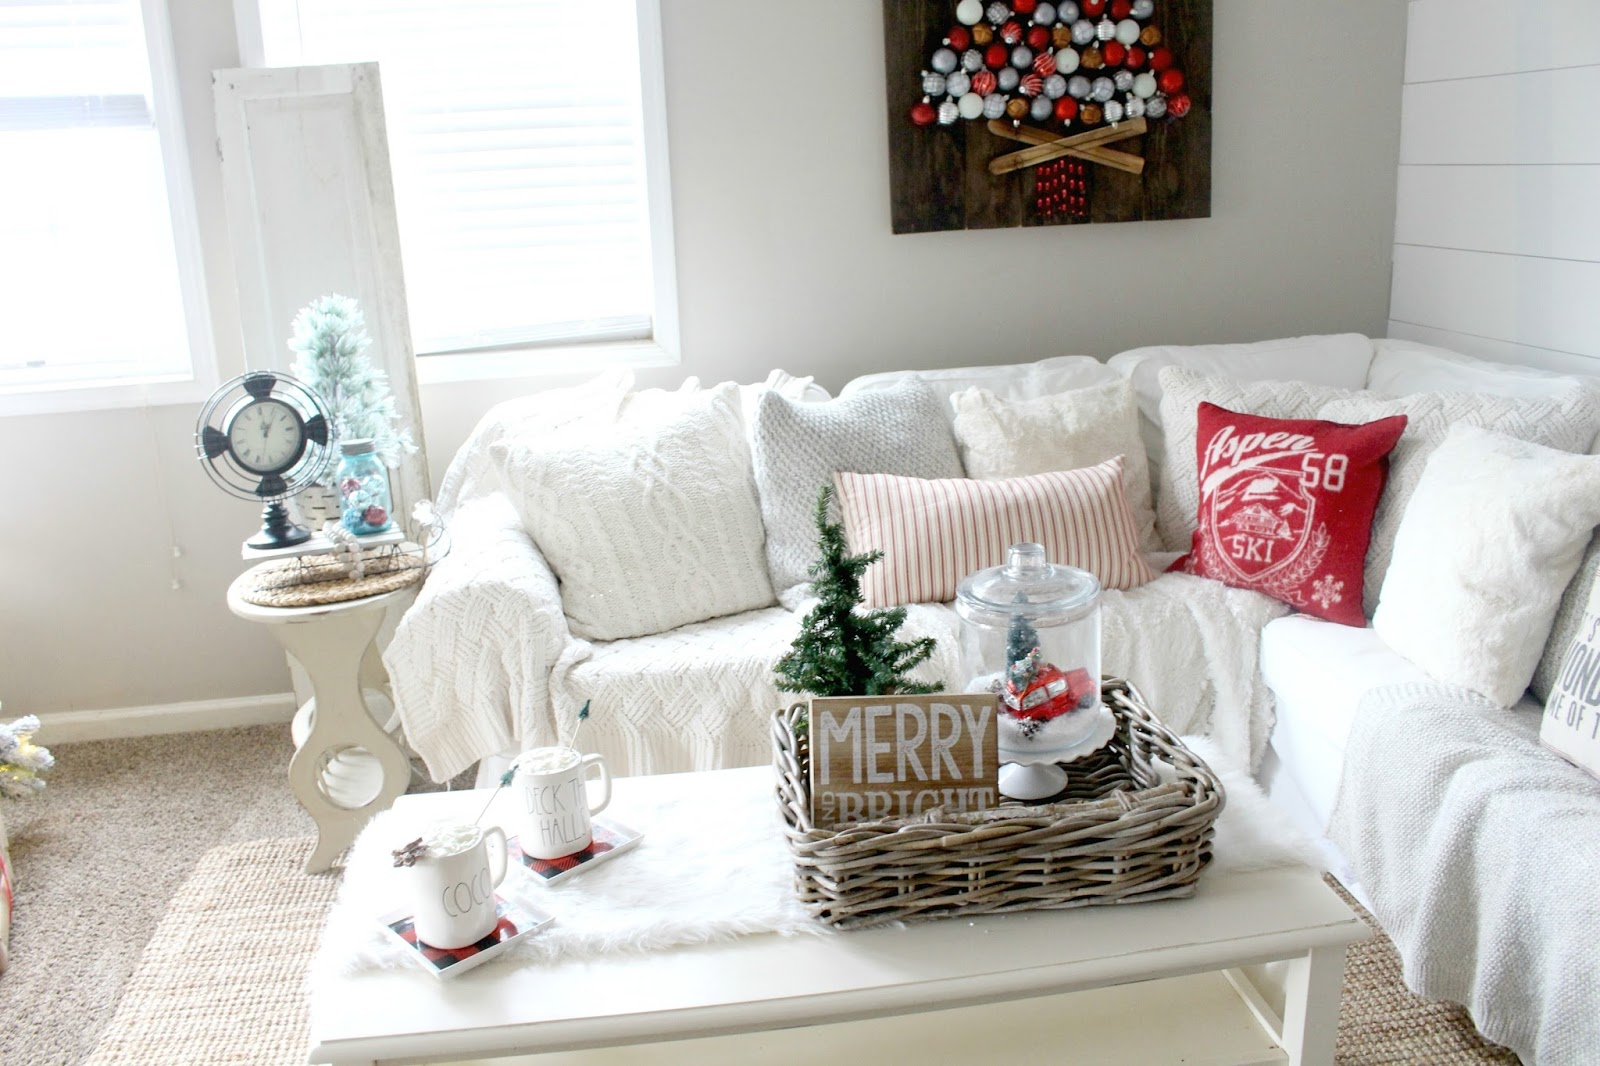 How To Decorate Your Coffee Table for Christmas - The Glam ...